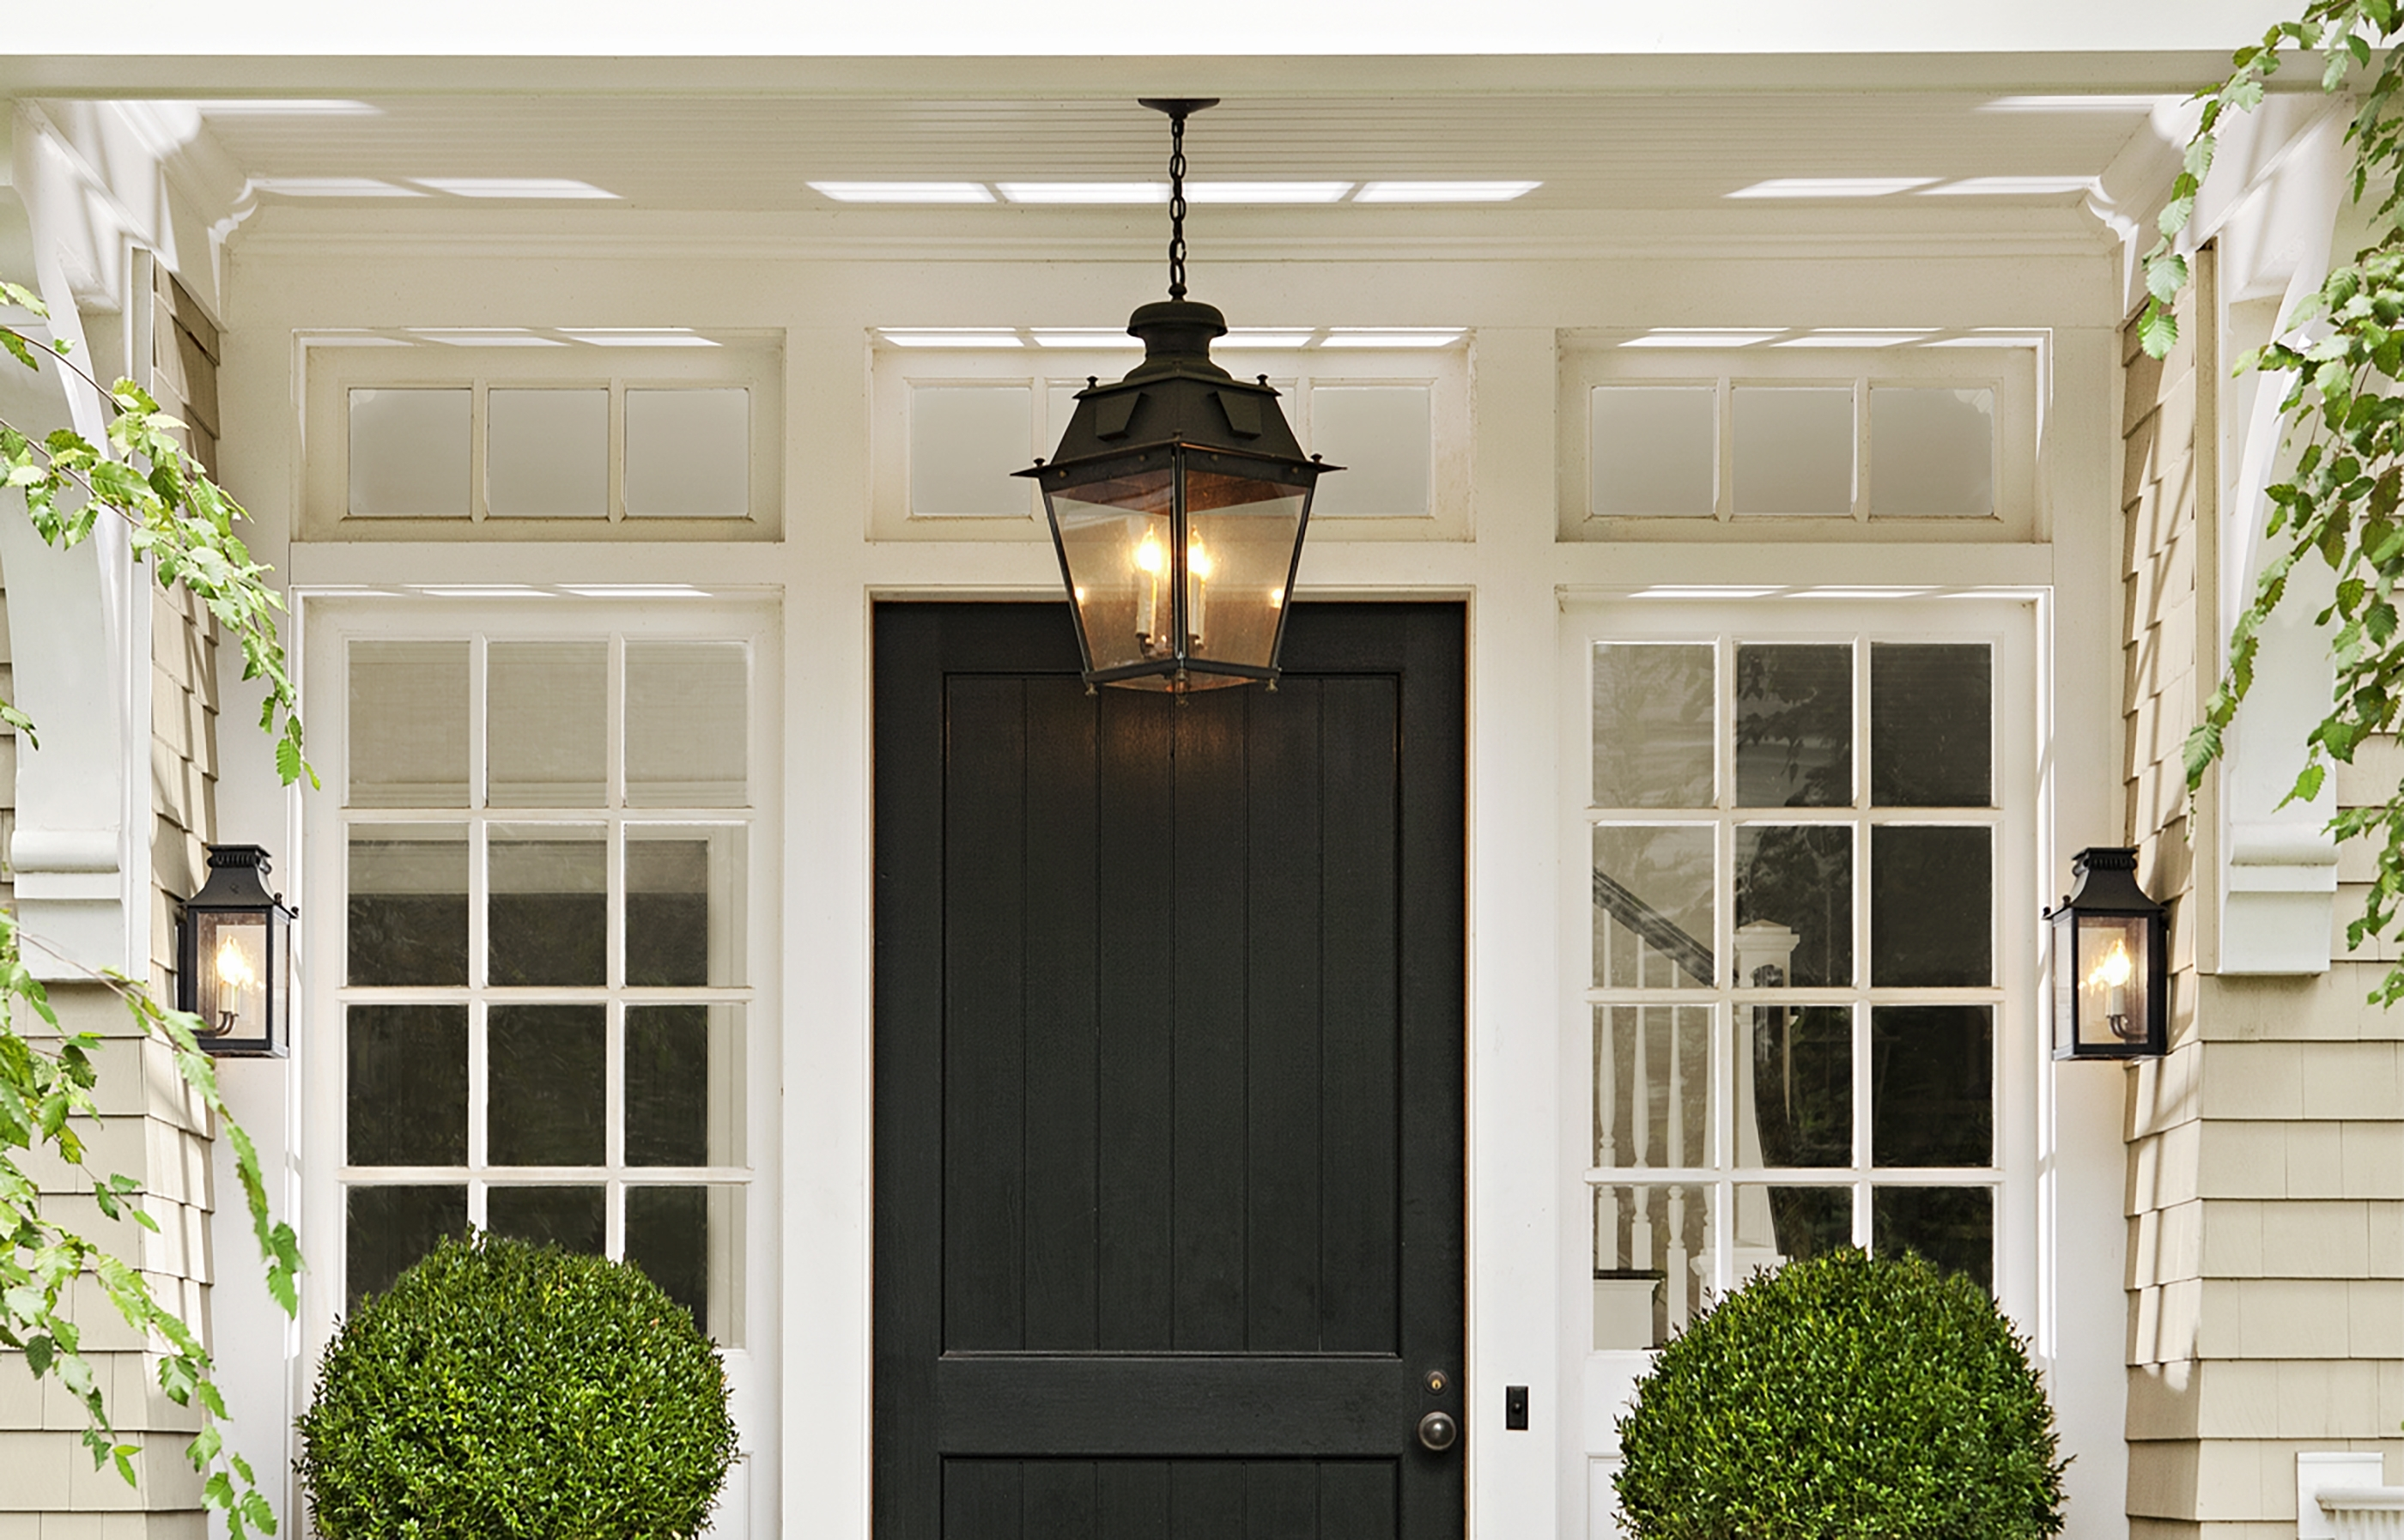 Front Porch Light Fixtures Modern Ceiling Lowes – Teamns For Best And Newest Ceiling Outdoor Lights For Front Porch (View 13 of 20)